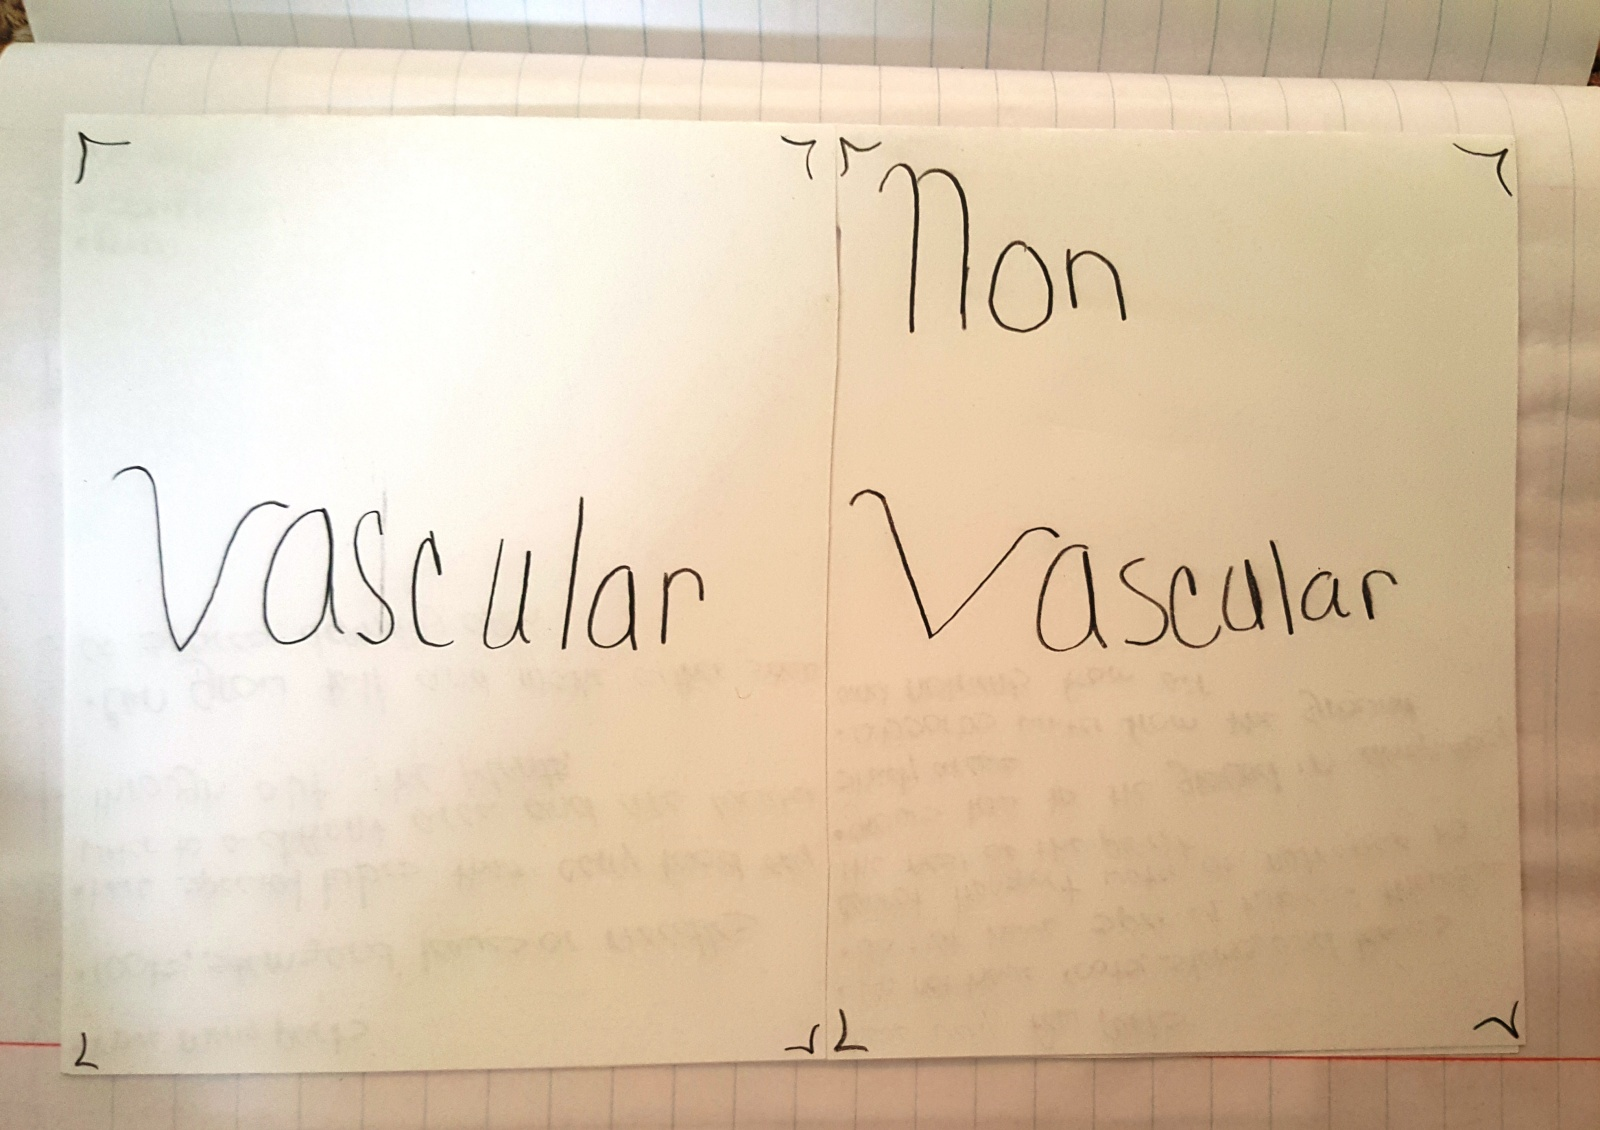 Lesson Plant Kingdom Classifying Vascular And